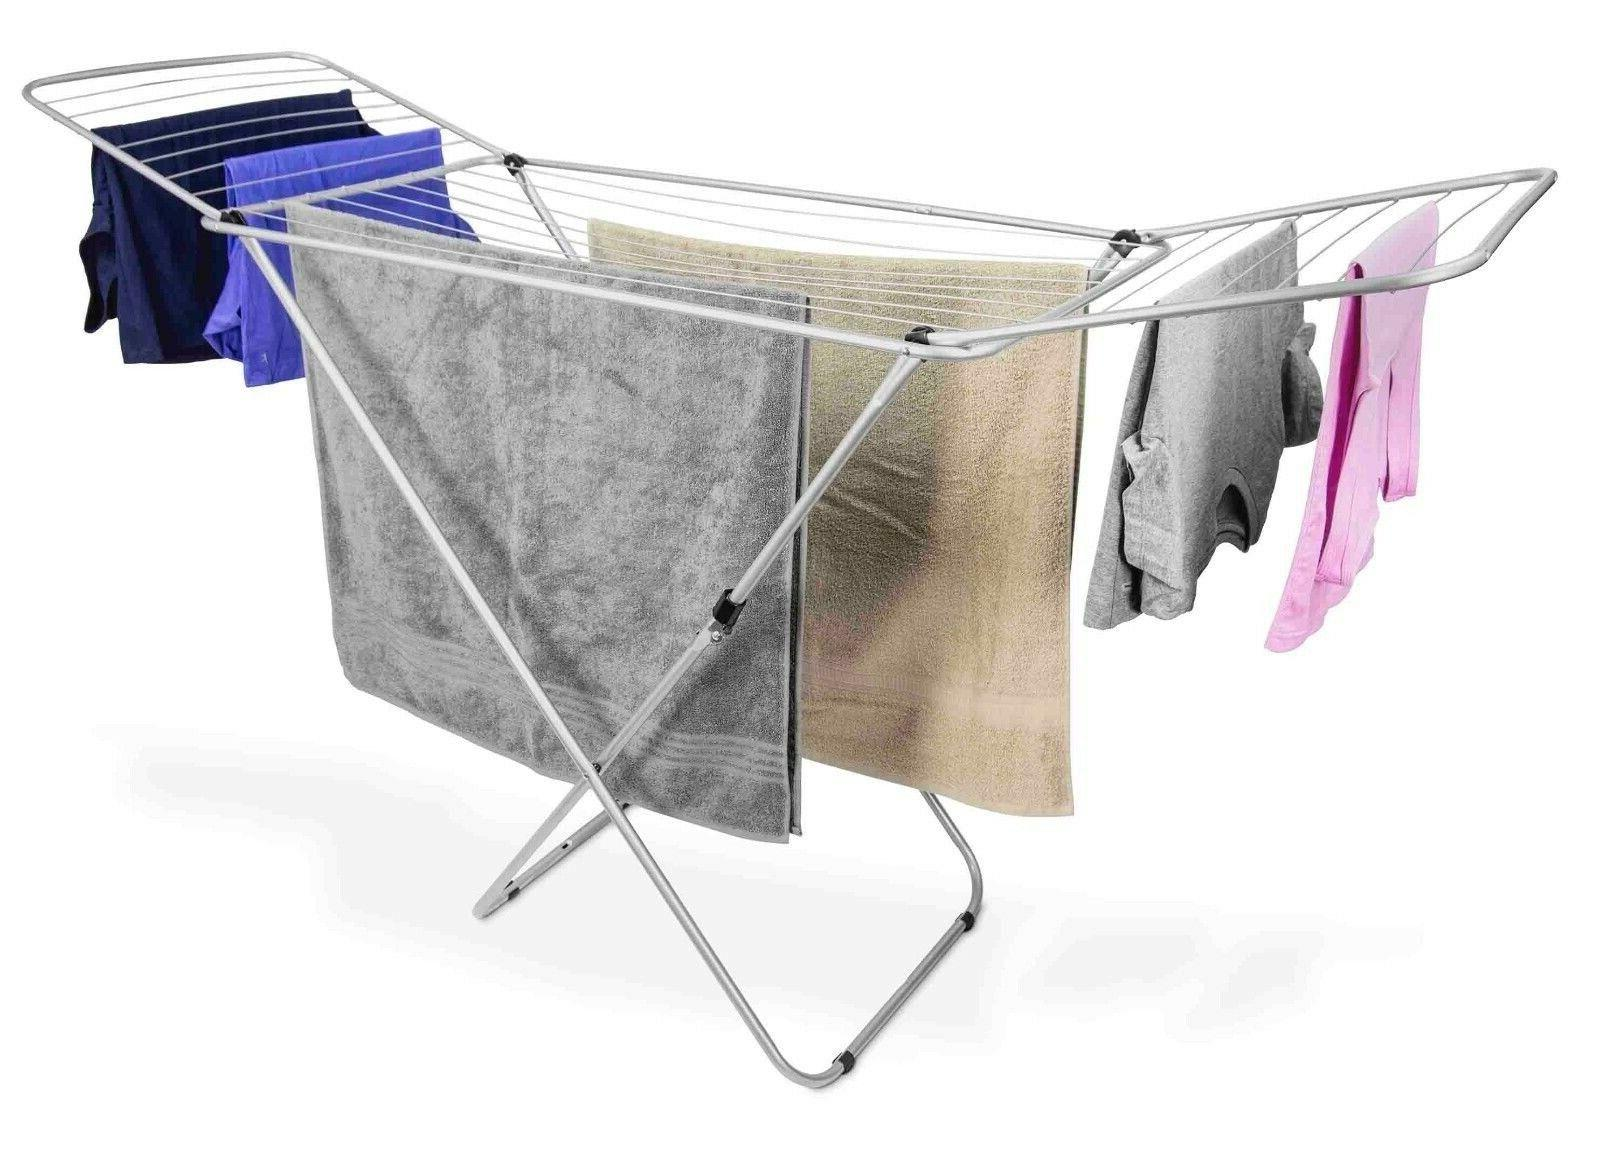 folding laundry drying rack collapsible